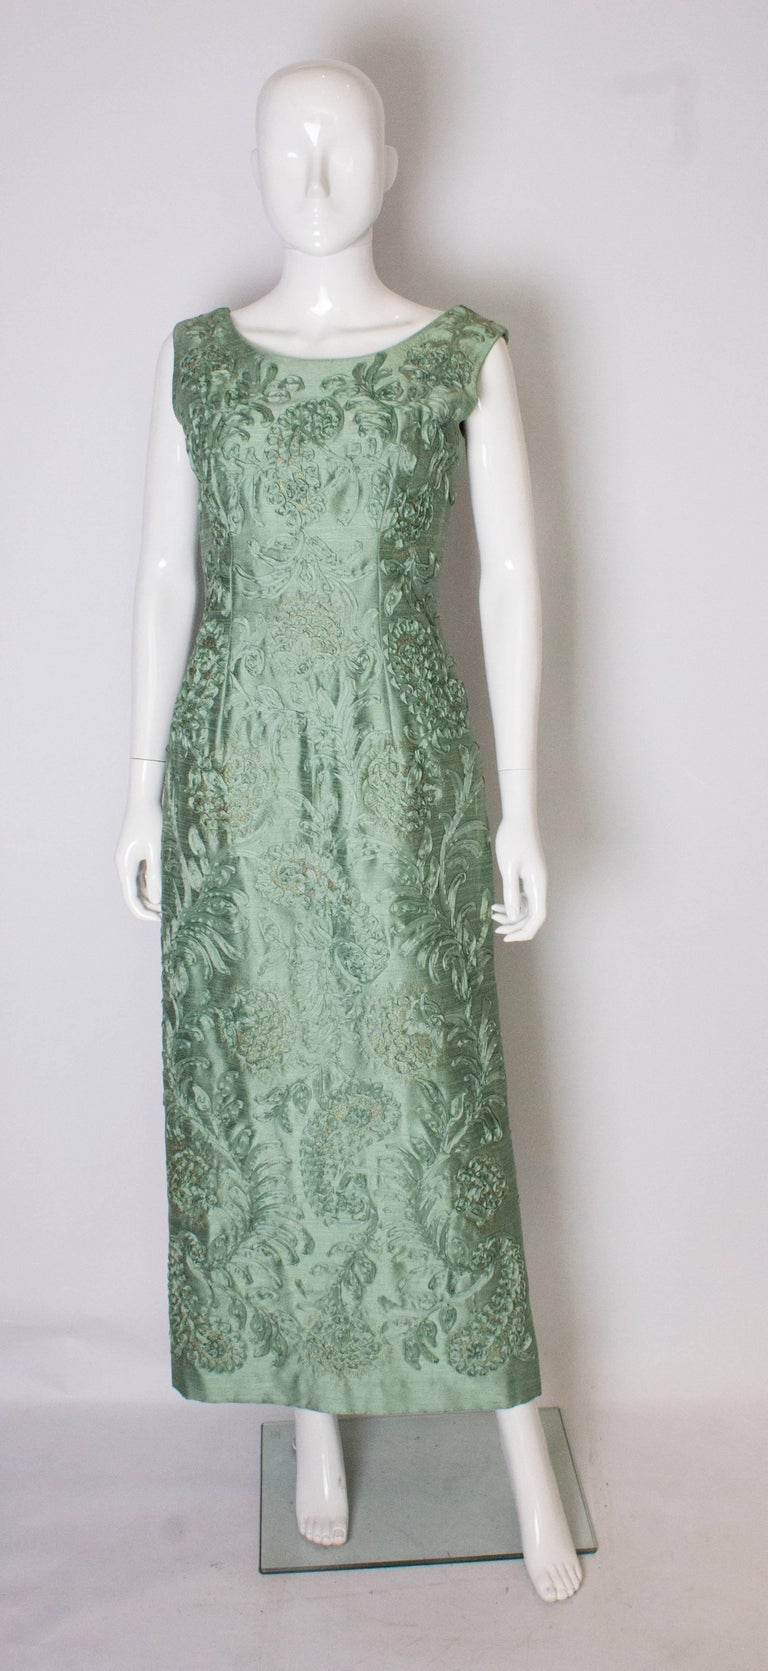 A chic sage green evening gown by Carita Couture . The dress is made of a sage green fabric, speckled with gold and has ribbon decoration. The dress has a scoop back and front with a  central back zip, and a 15'' slit at the back.